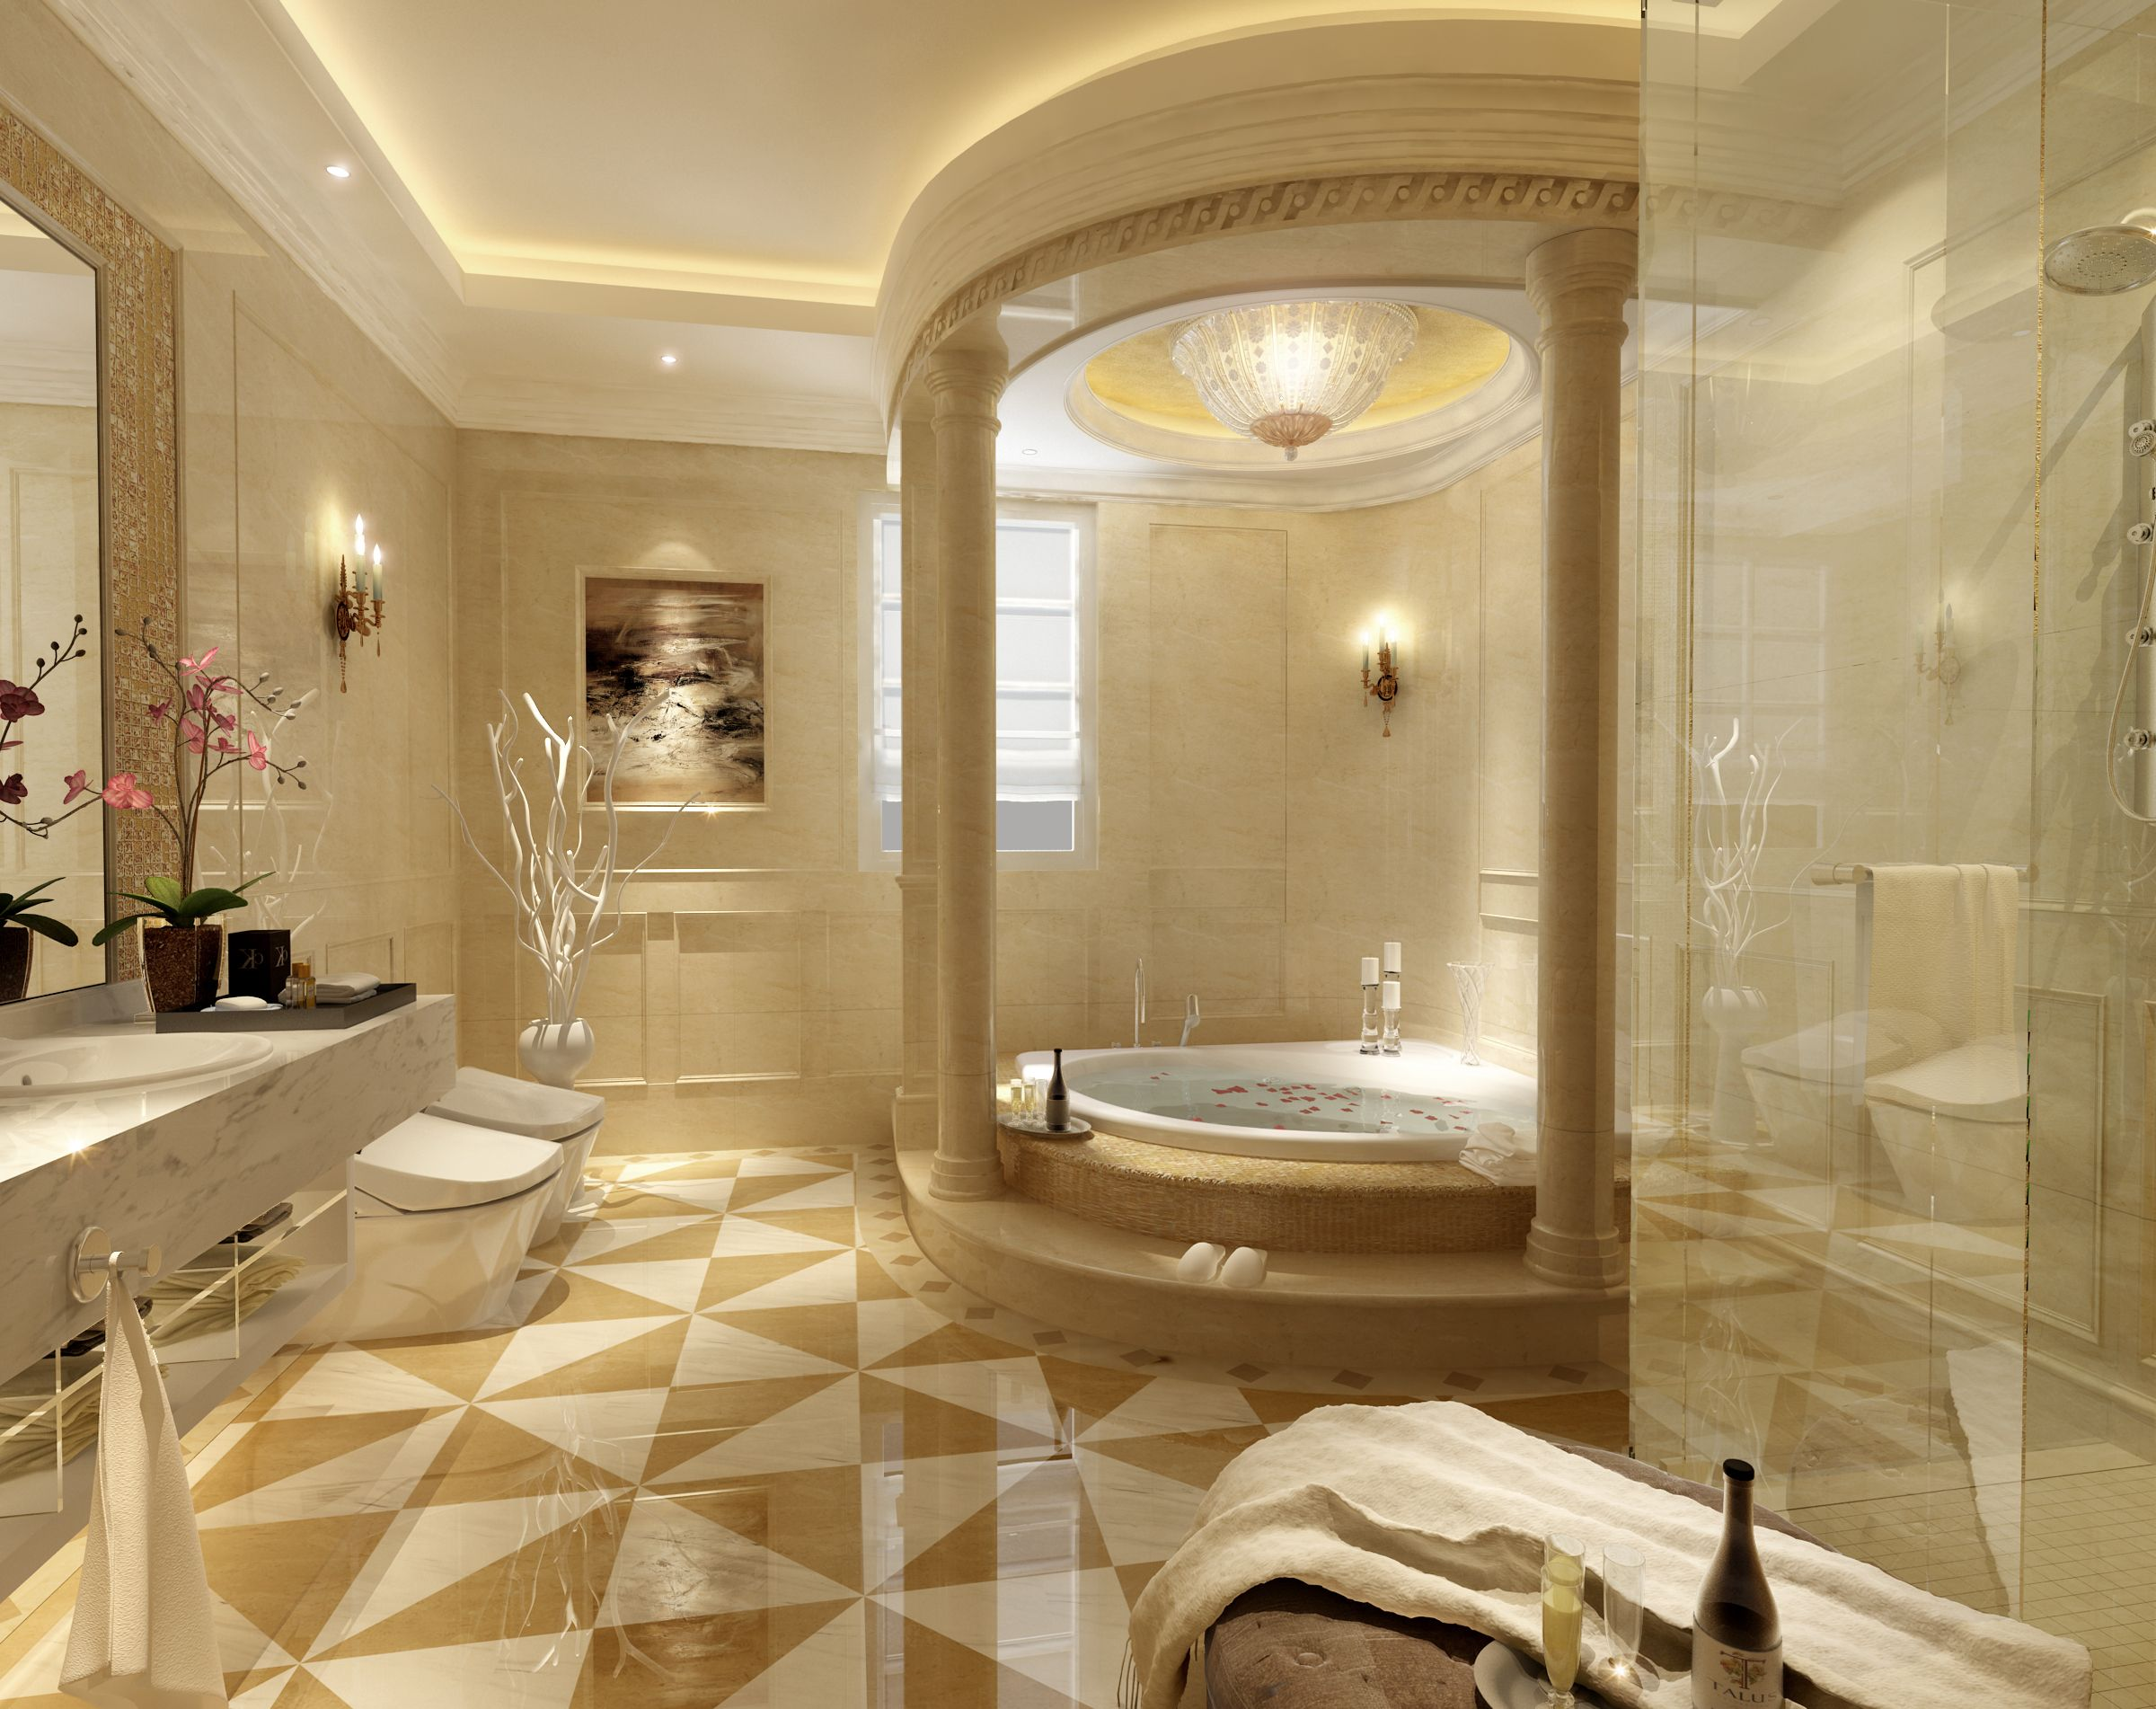 12 Luxurious Bathroom Design Ideas: 55 Amazing Luxury Bathroom Designs